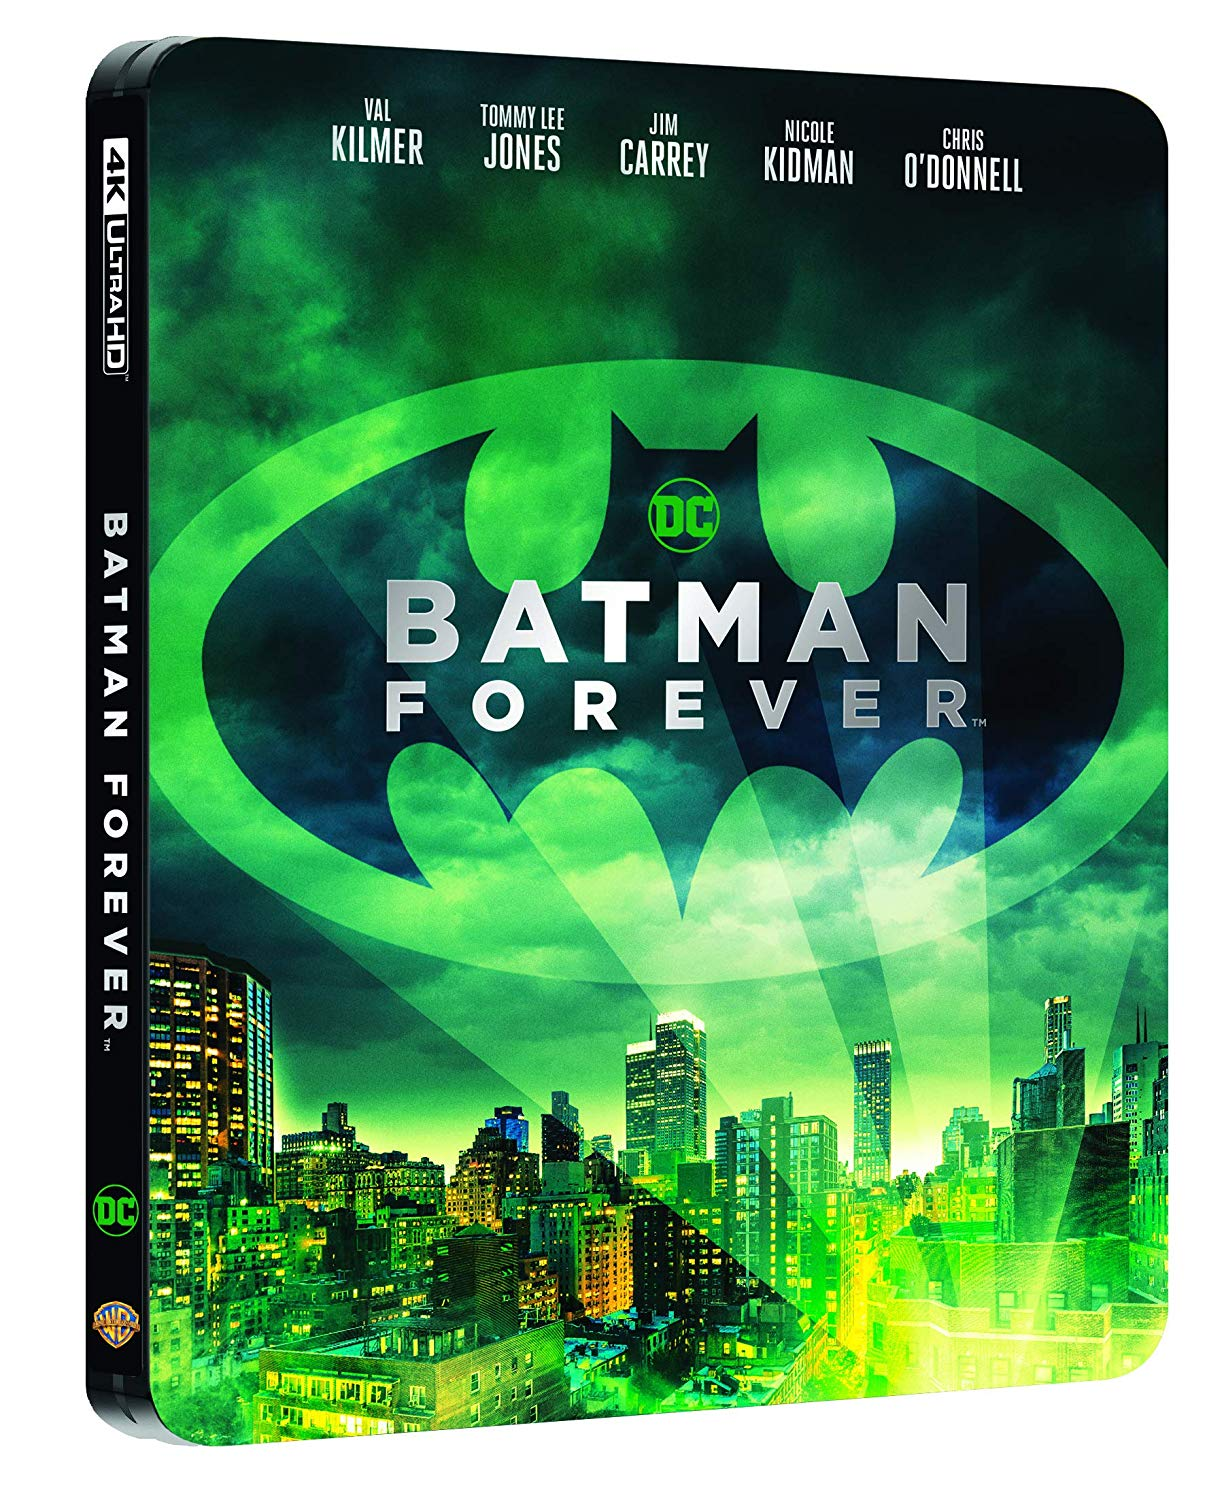 BATMAN FOREVER STEELBOOK (4K ULTRA HD+BLU-RAY)